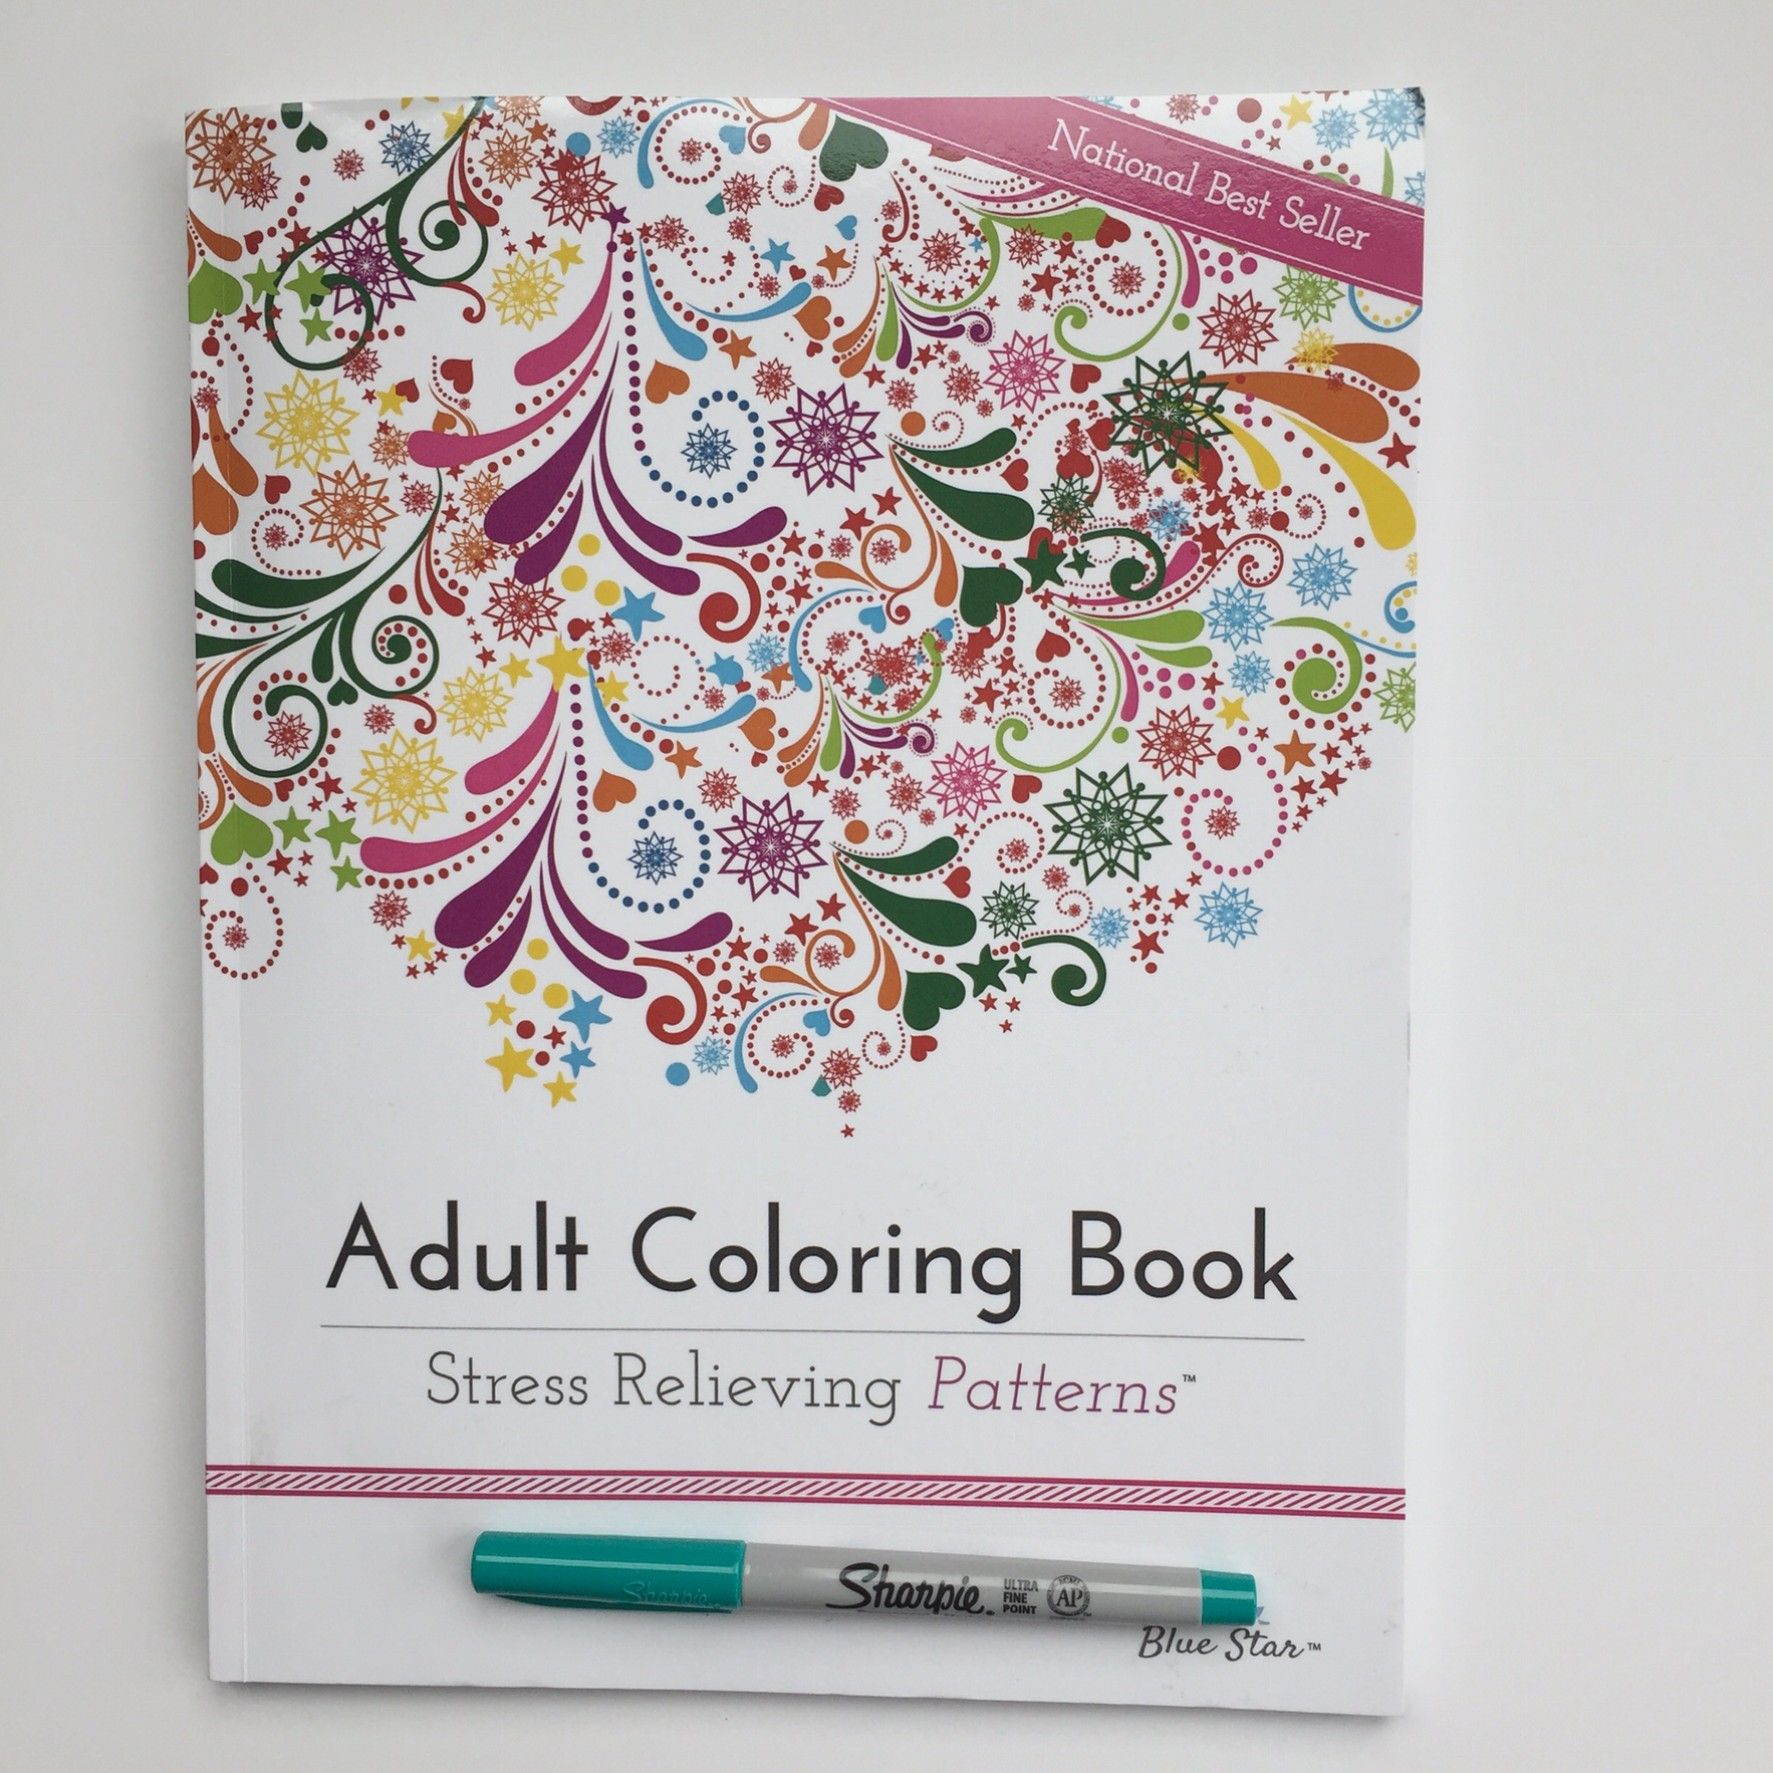 Best grown up coloring books - Adult Coloring Book Stress Relieving Patterns Review